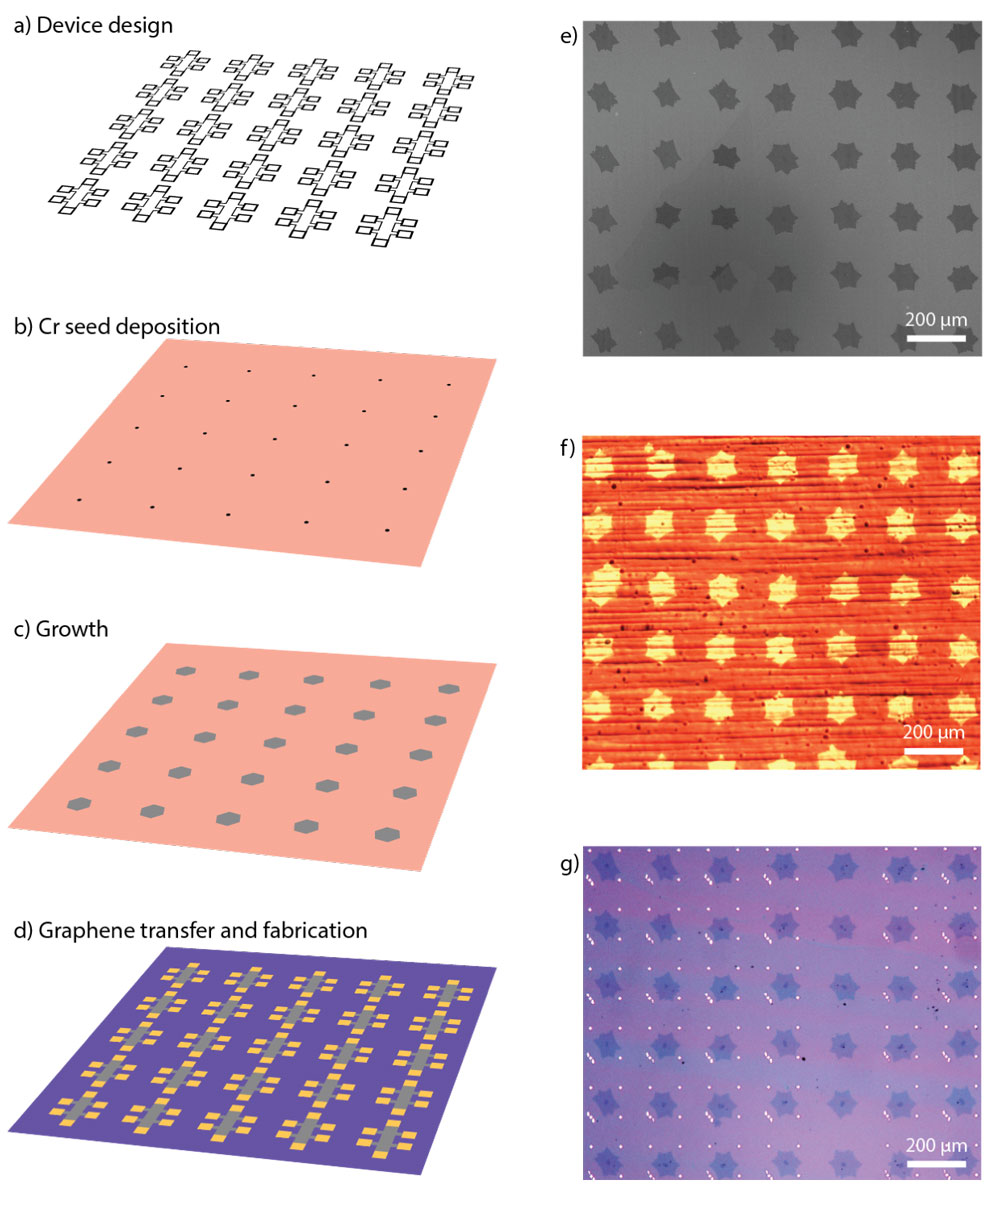 (a)–(d) Proposed process flow for deterministic growth of single-crystal graphene. (e) SEM image of an array of graphene single-crystals. (f) Optical image of a graphene array on oxidised Cu foil. (g) Optical image of single-crystal array transferred on Si/SiO2 substrate with alignment markers. In figures (e)–(g) the array periodicity is 200 μm and crystal size is ~100 μm.